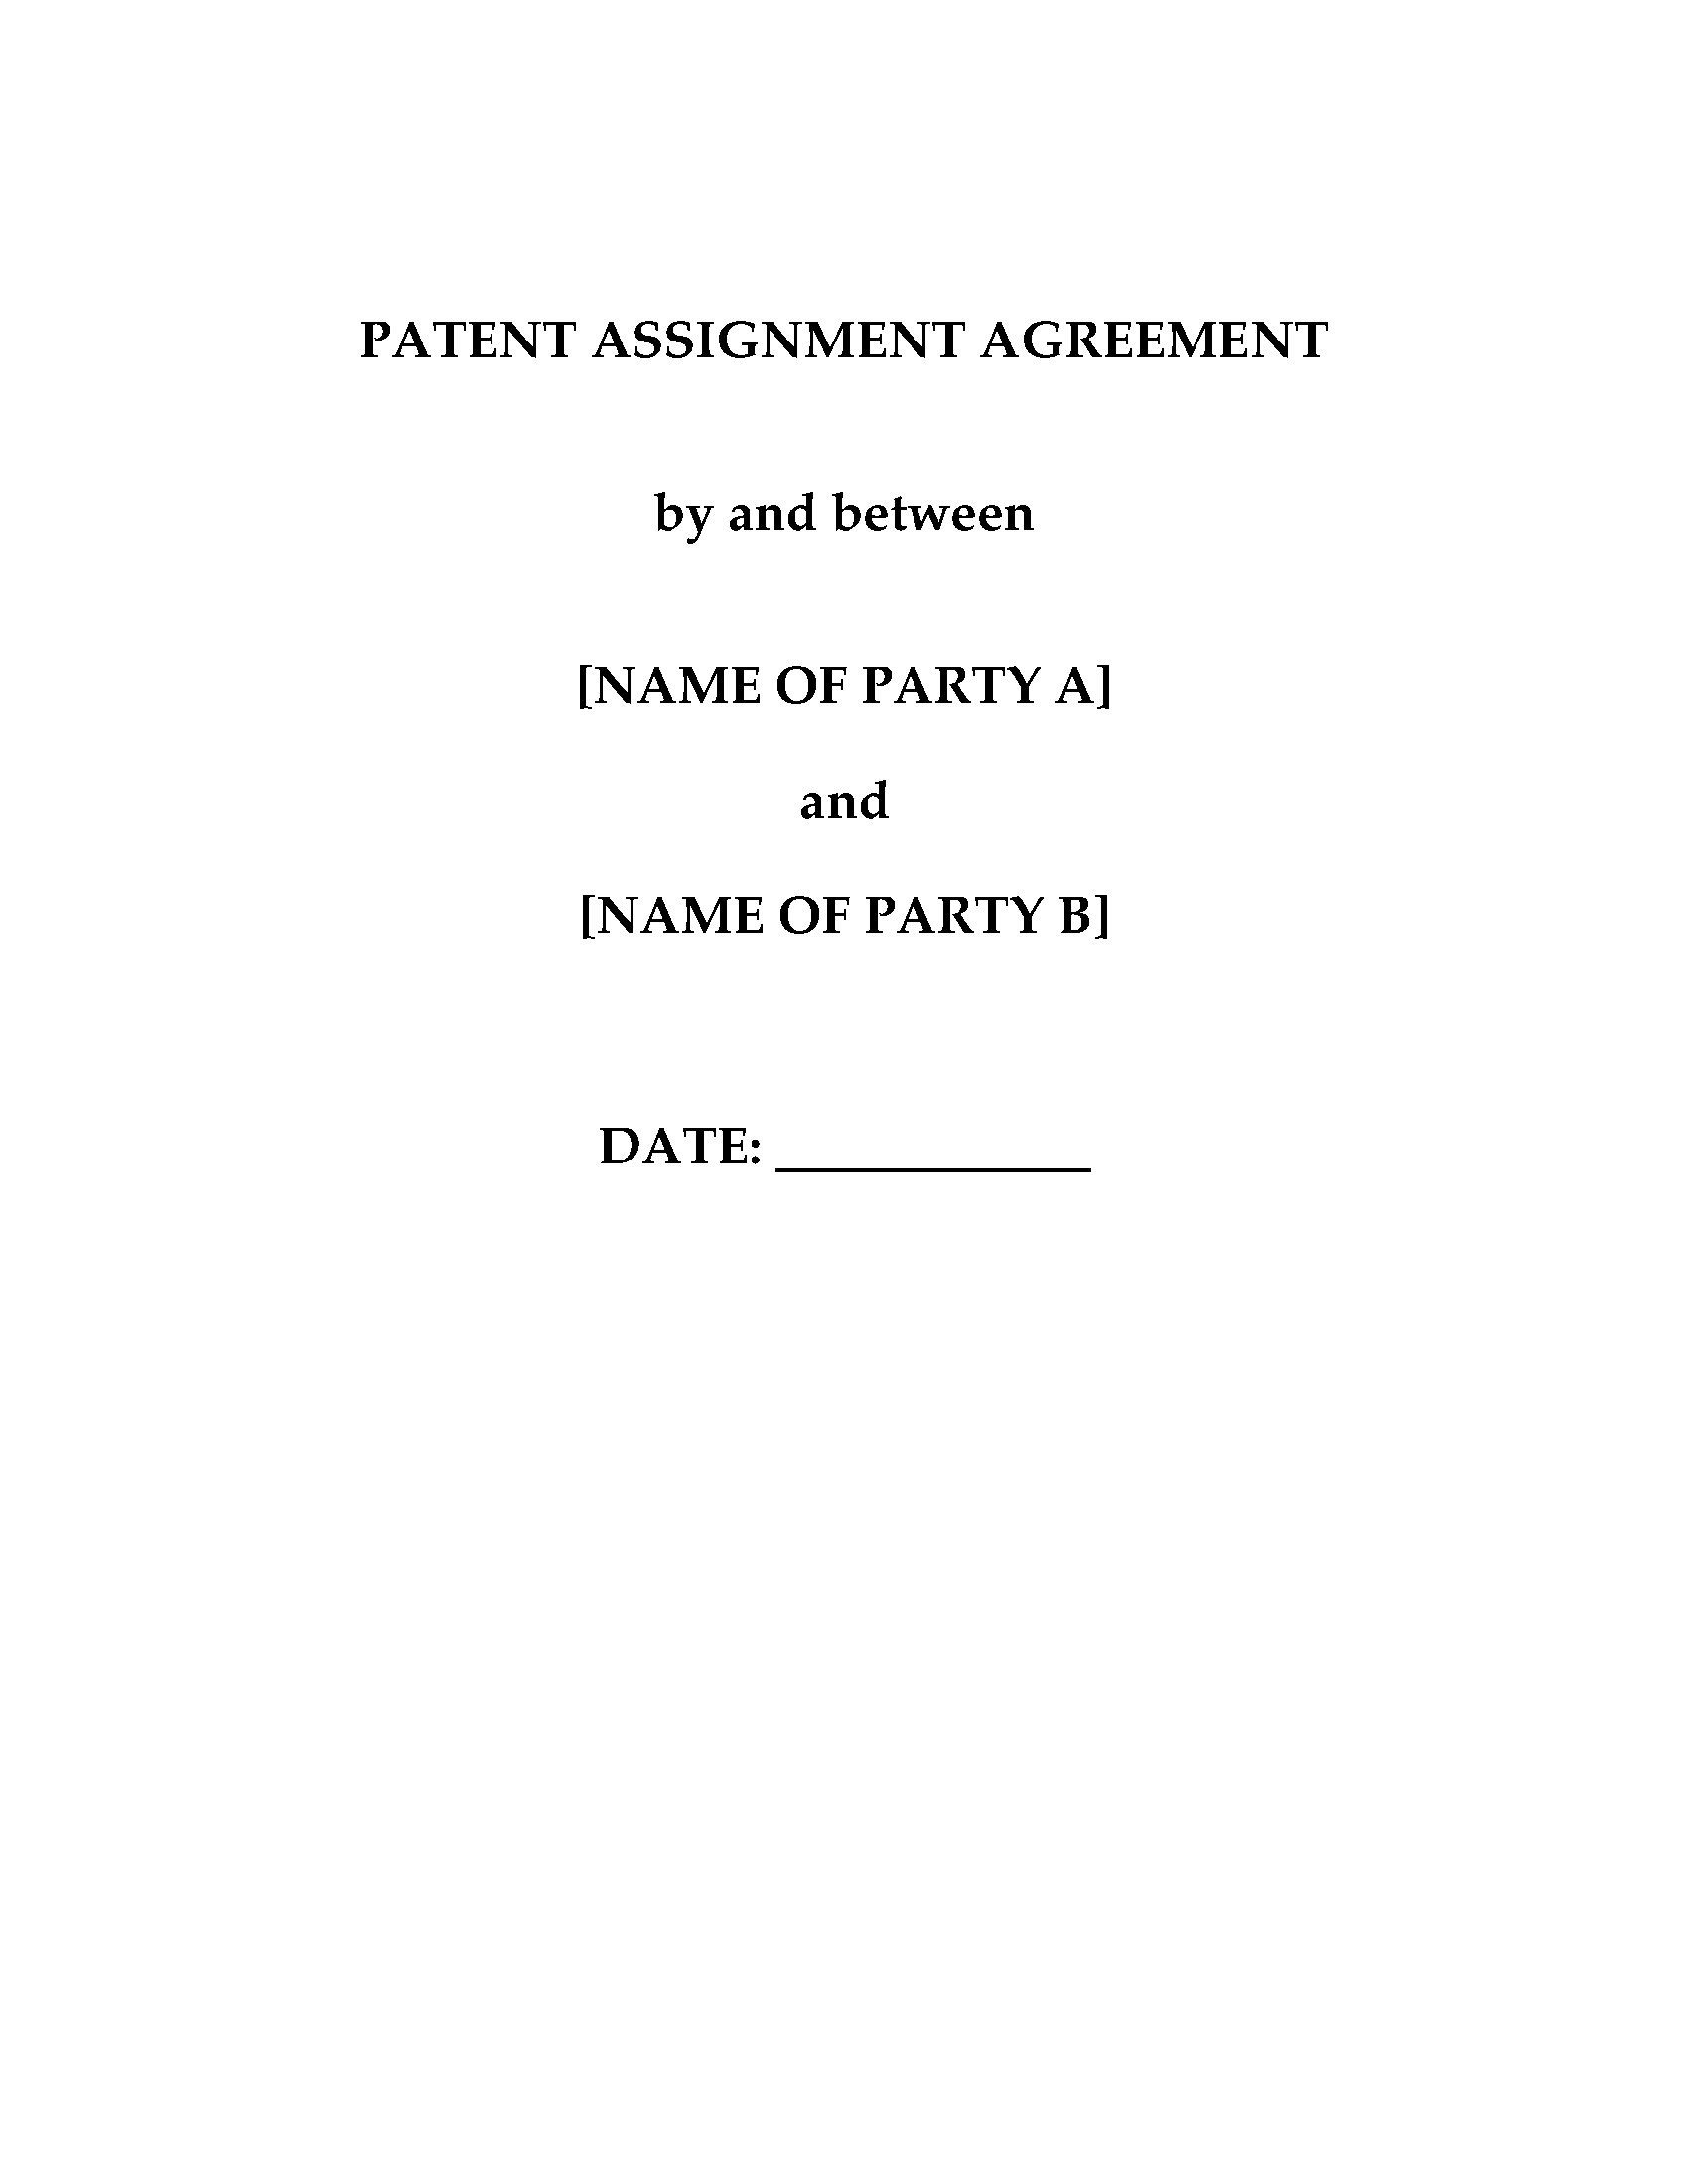 China Patent Assignment Agreement Form  Legal Forms And Business Regarding Invention Assignment Agreement Template